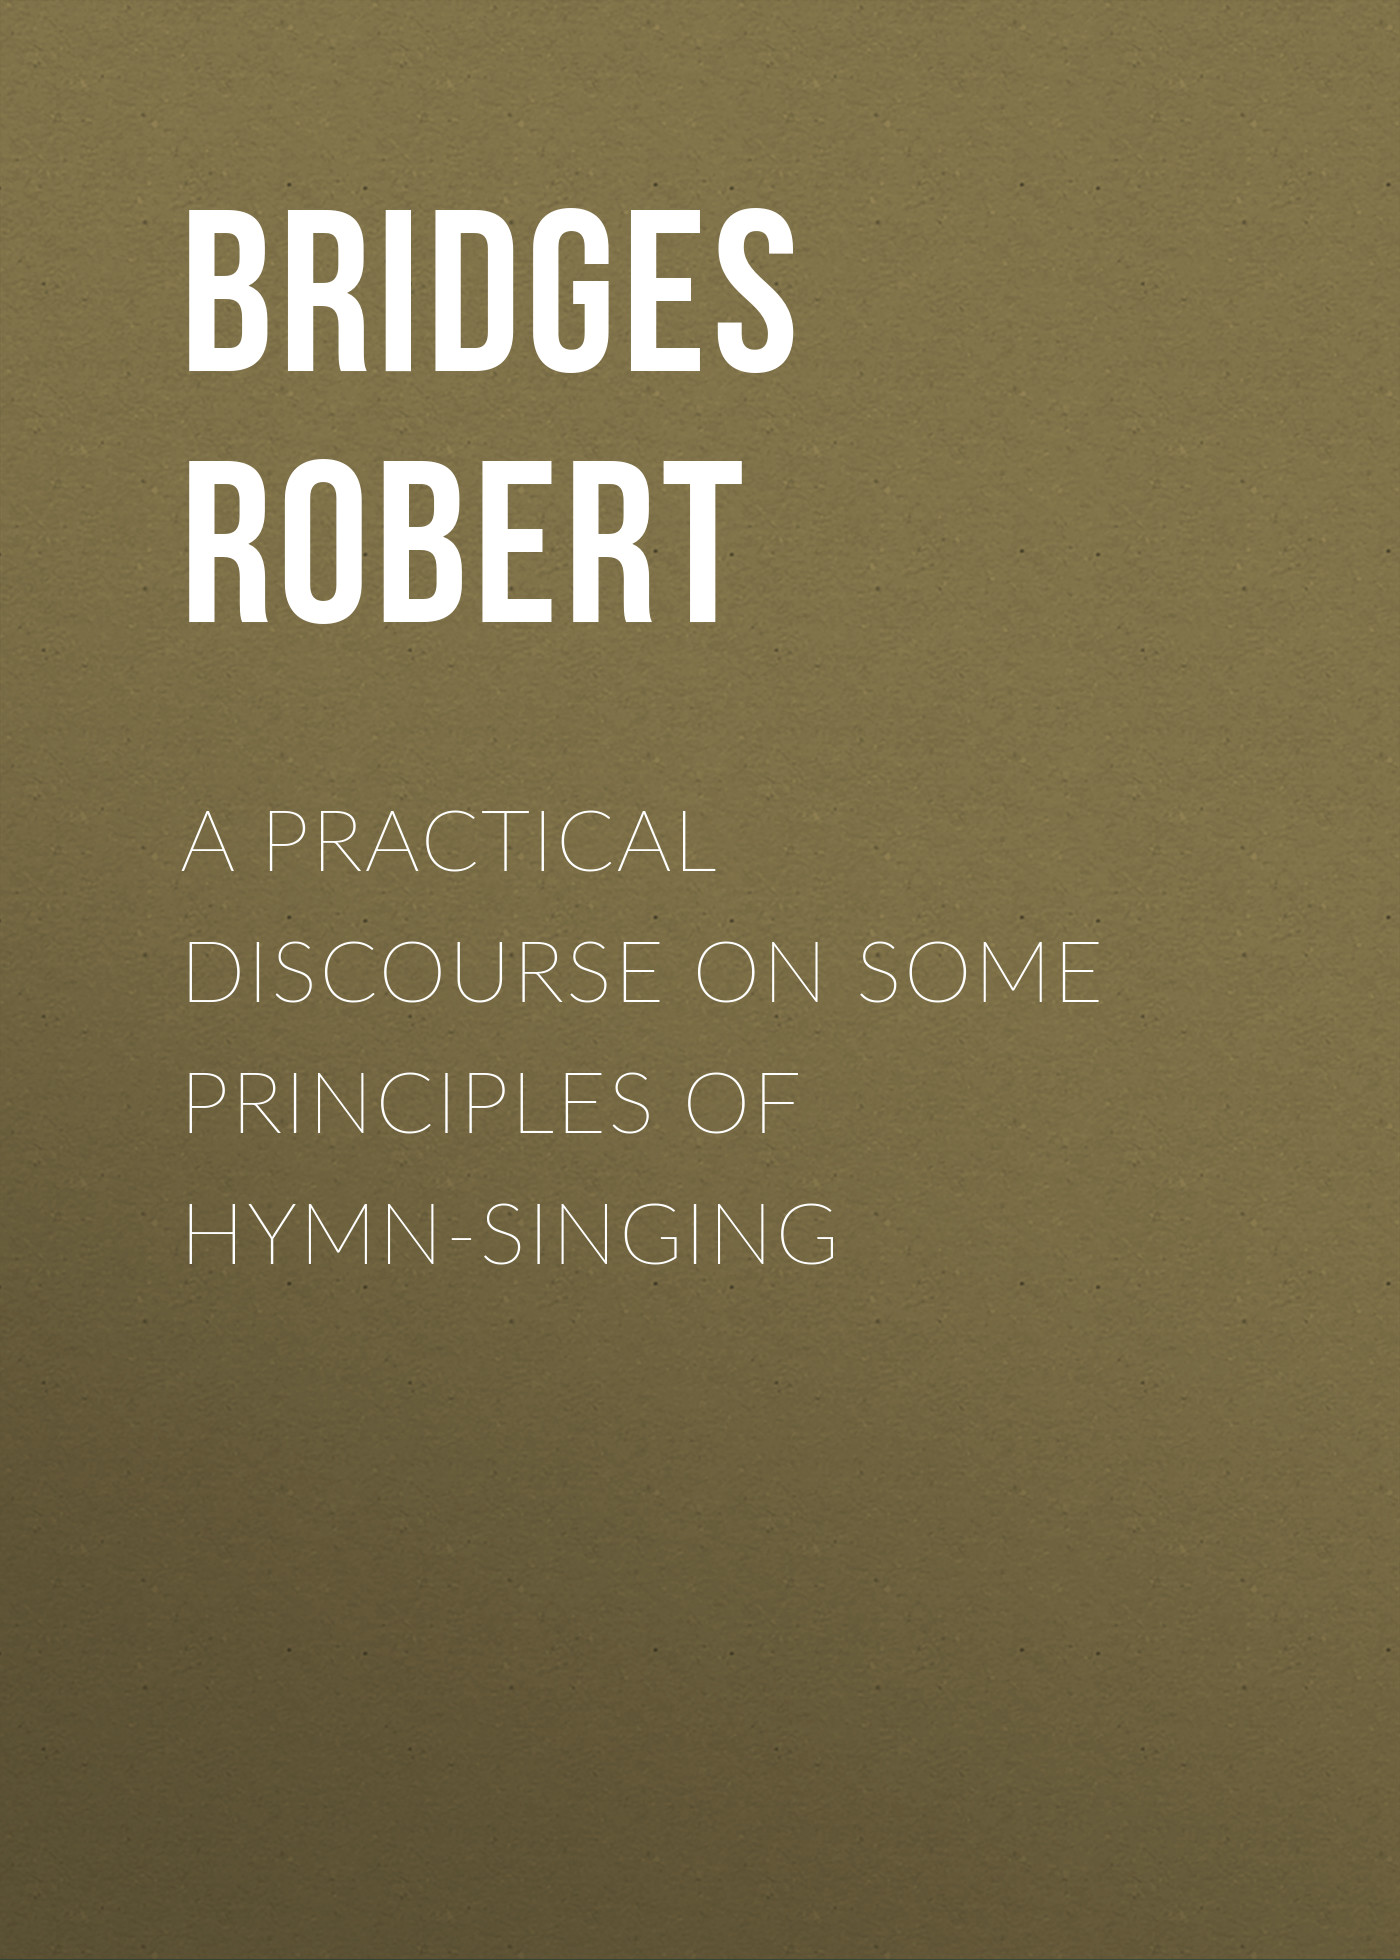 Bridges Robert A Practical Discourse on Some Principles of Hymn-Singing bridges robert on english homophones